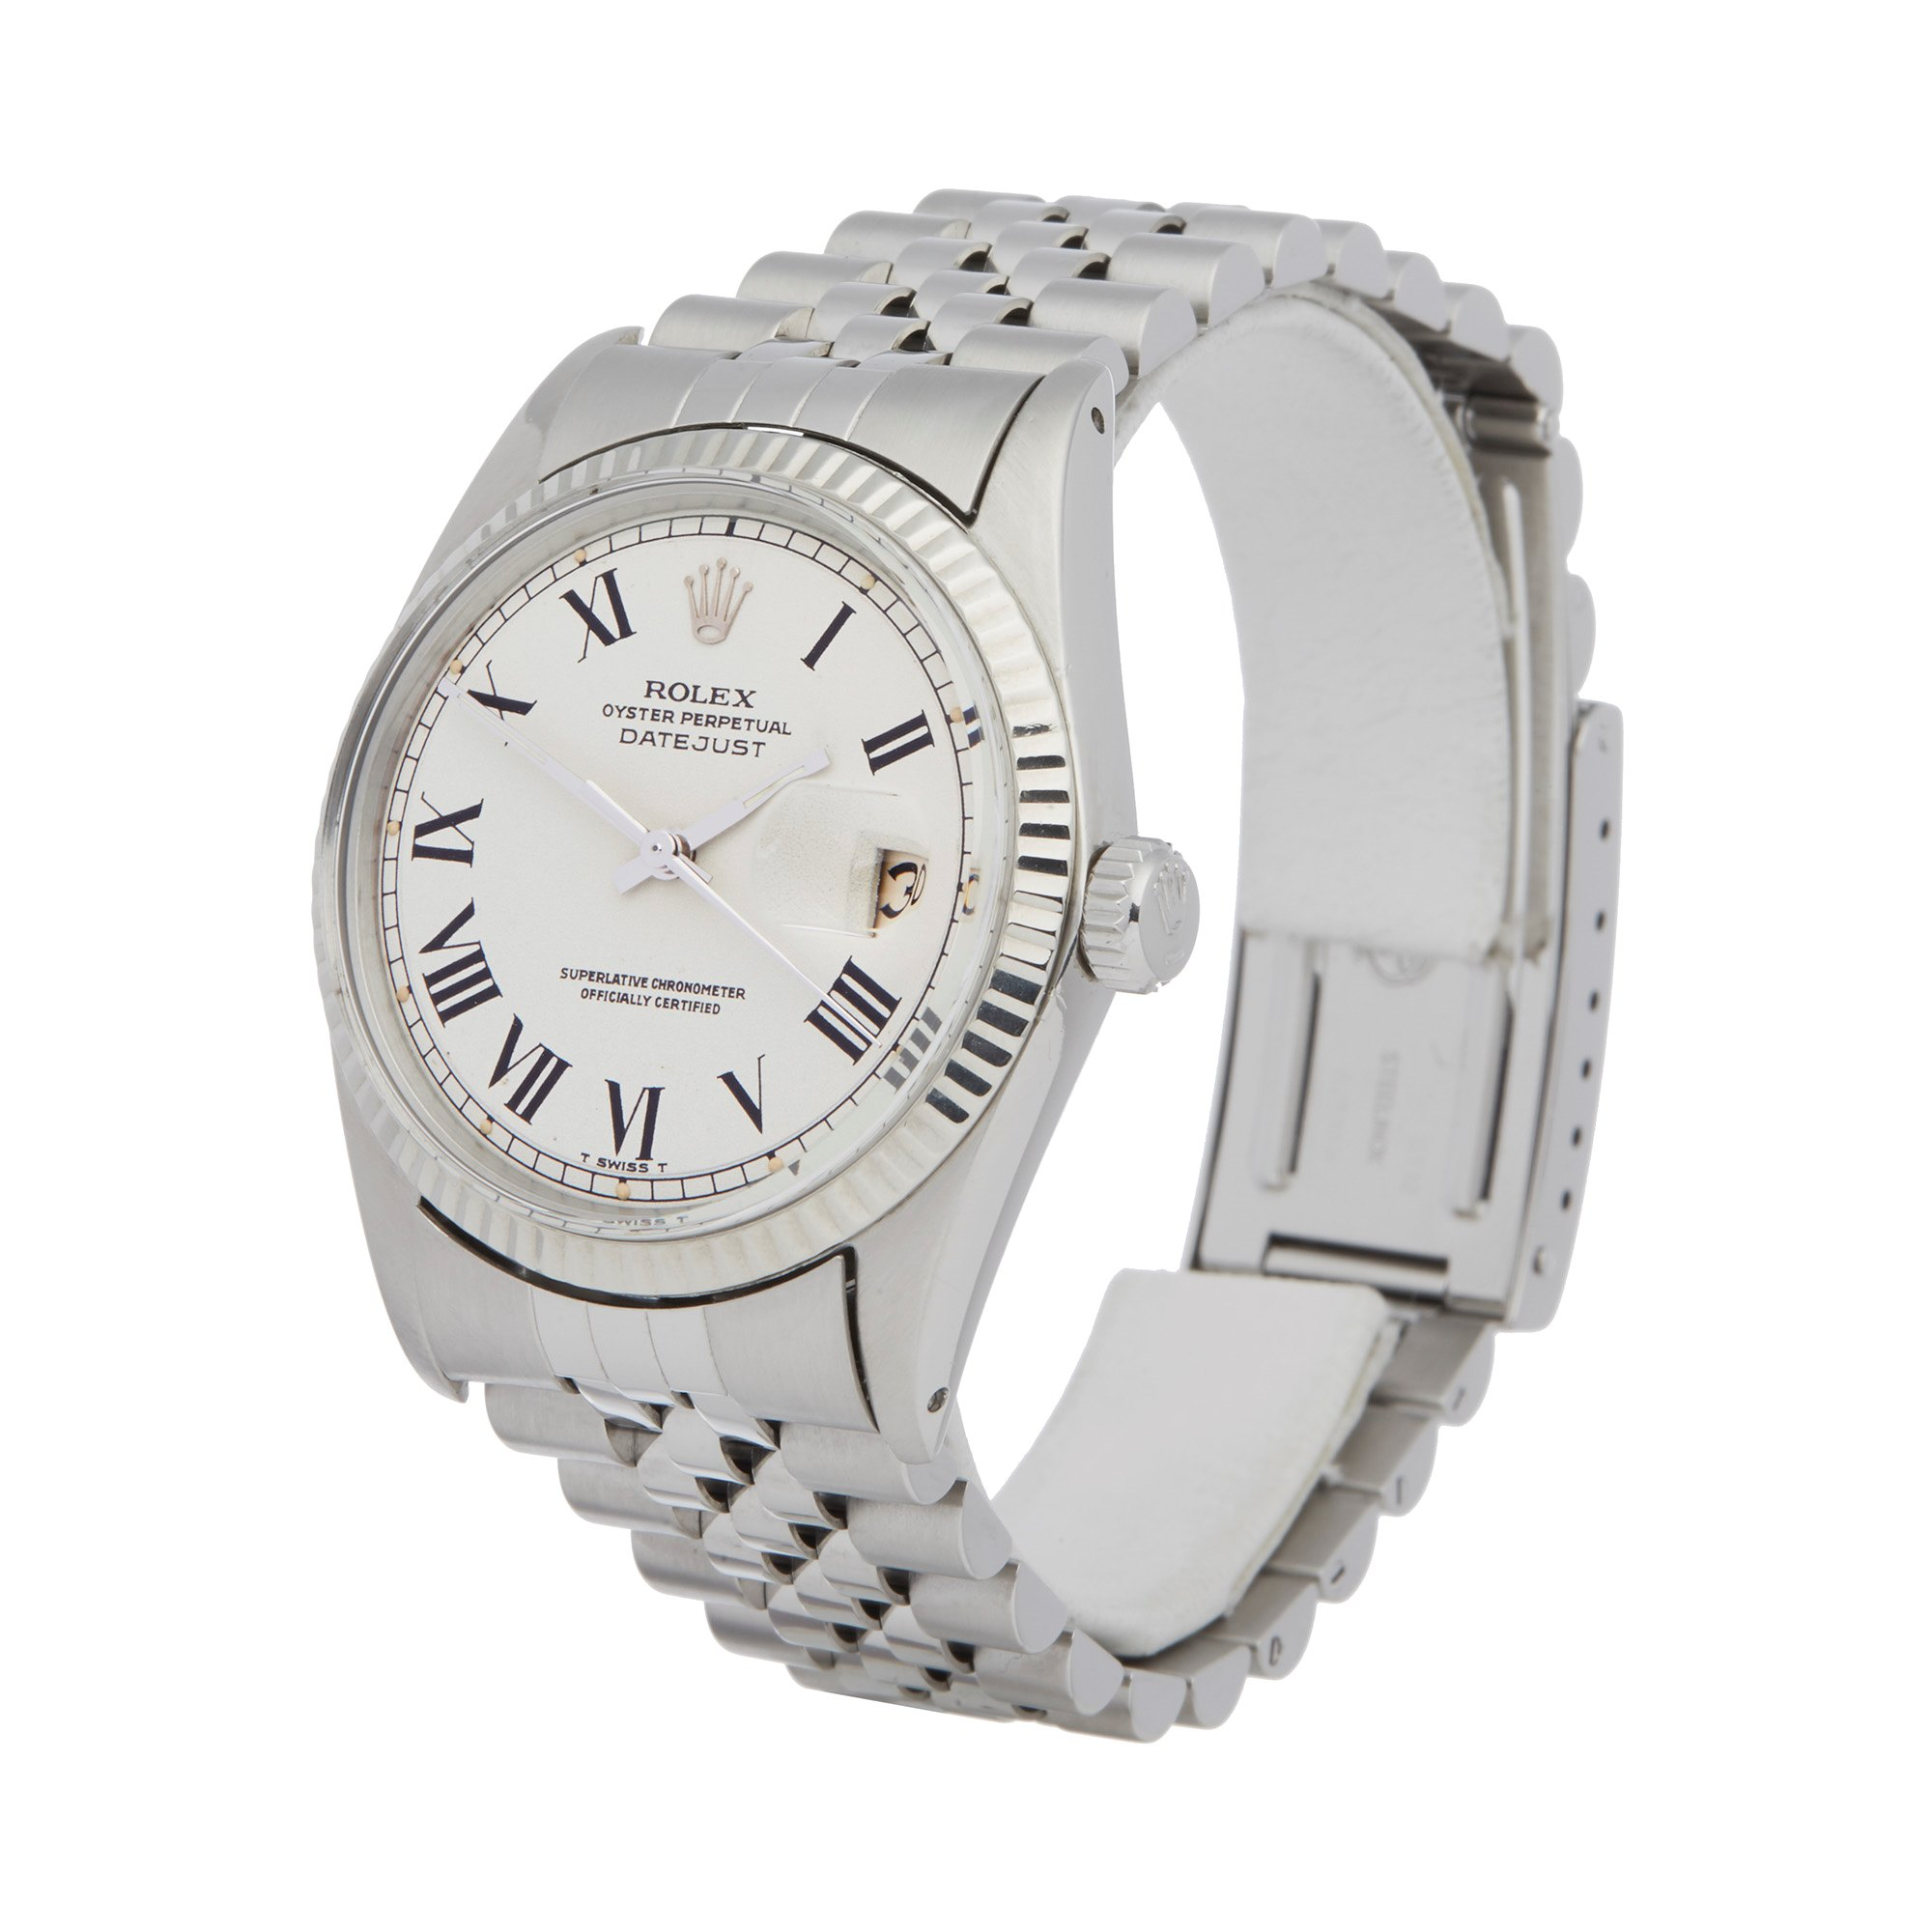 Rolex Datejust 36 Buckley Dial Stainless Steel 1601